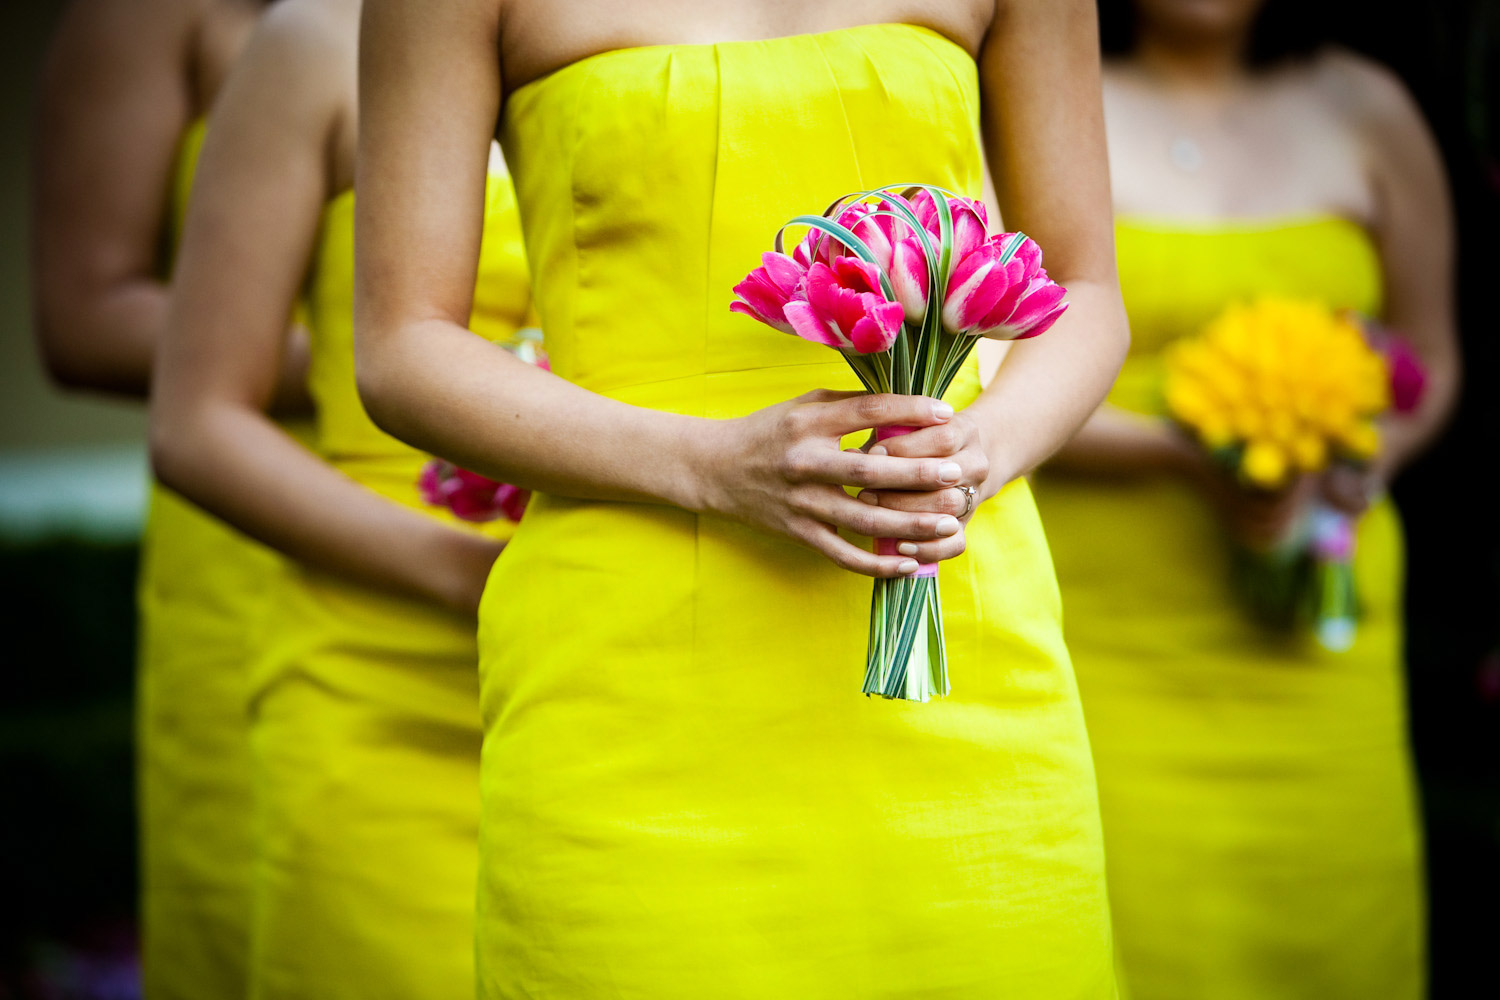 A detail photograph of the Bridesmaid's floral bouquets at a wedding at Wente Vineyards in San Francisco.